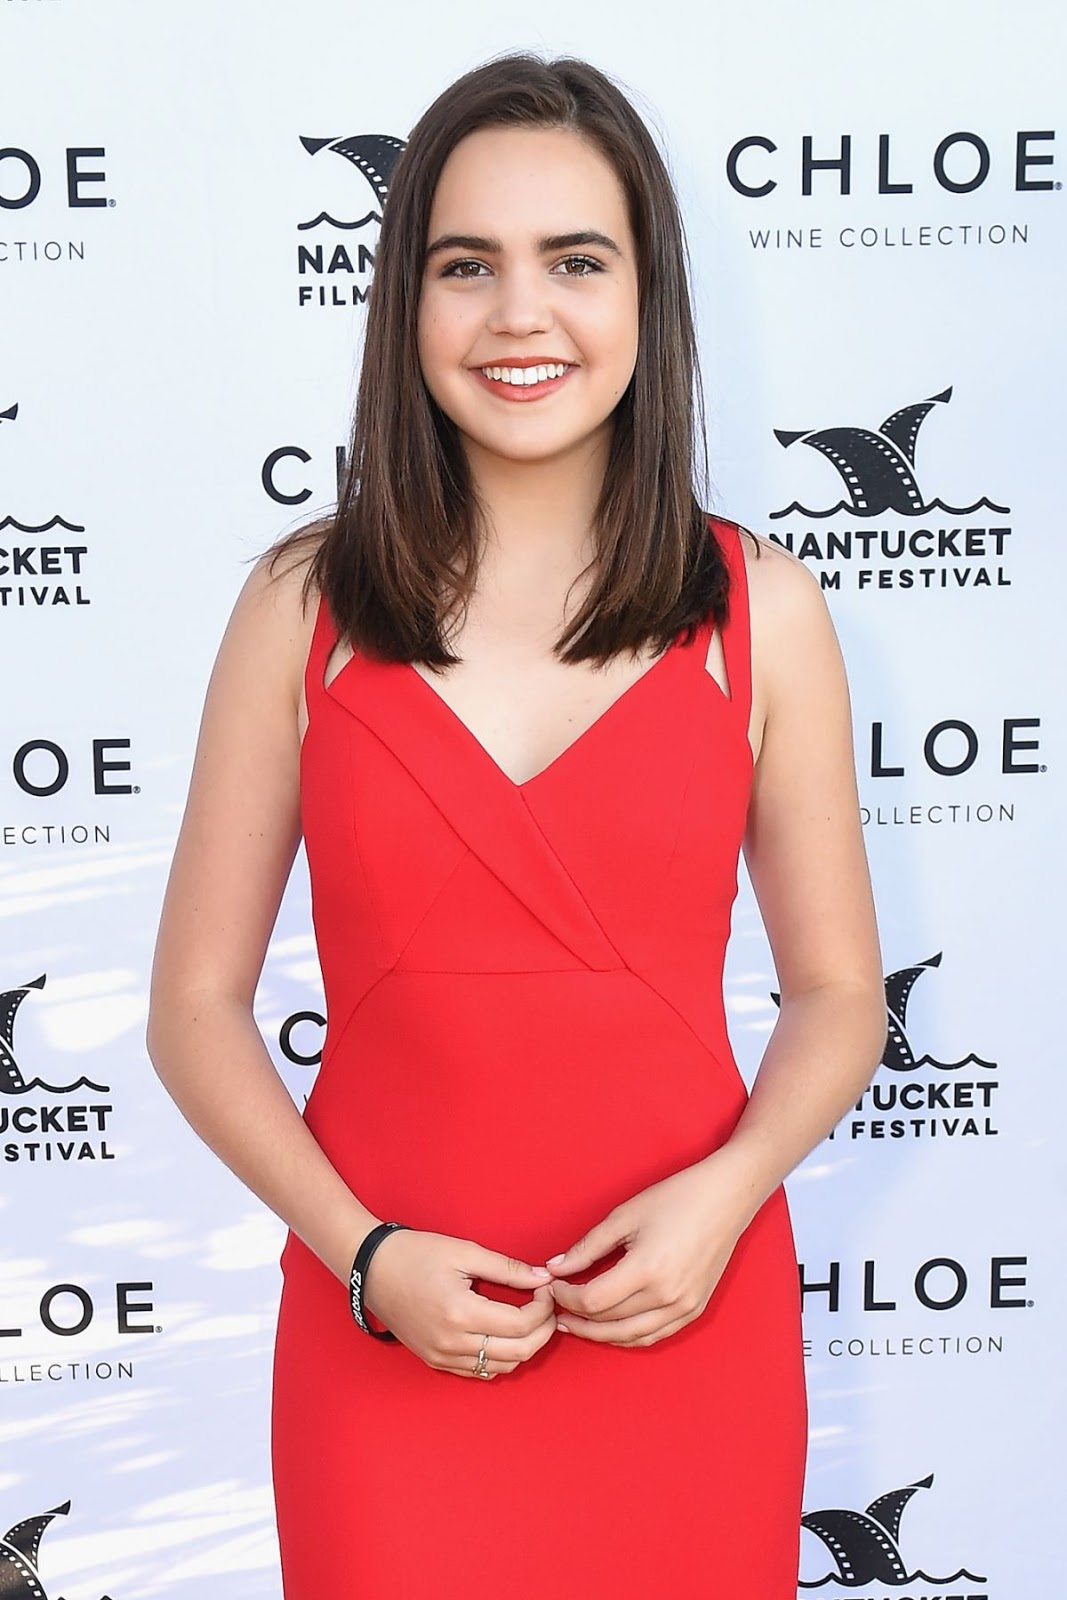 HQ Photos of Bailee Madison at 2016 Nantucket Film Festival Screenwriters Tribute